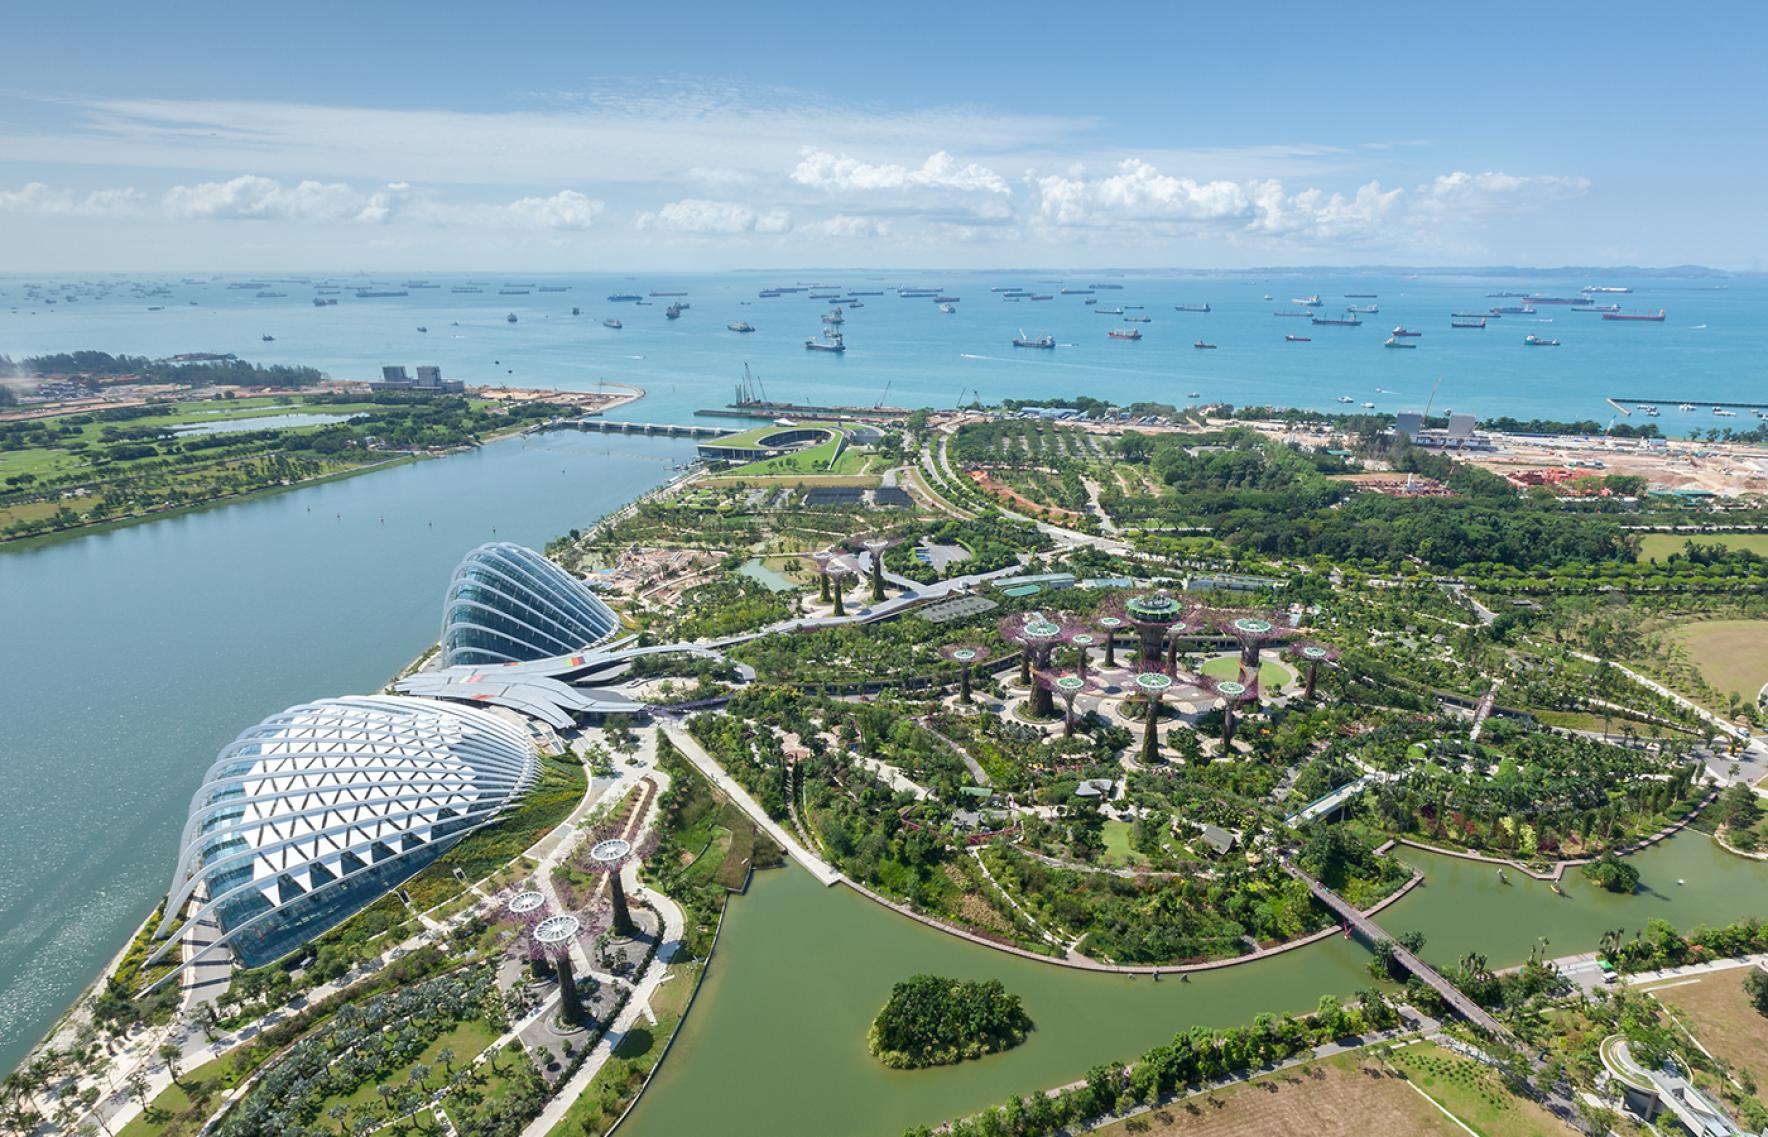 team that won the design competition for one of the most ambitious cultural projects of recent years the masterplan for singapores gardens by